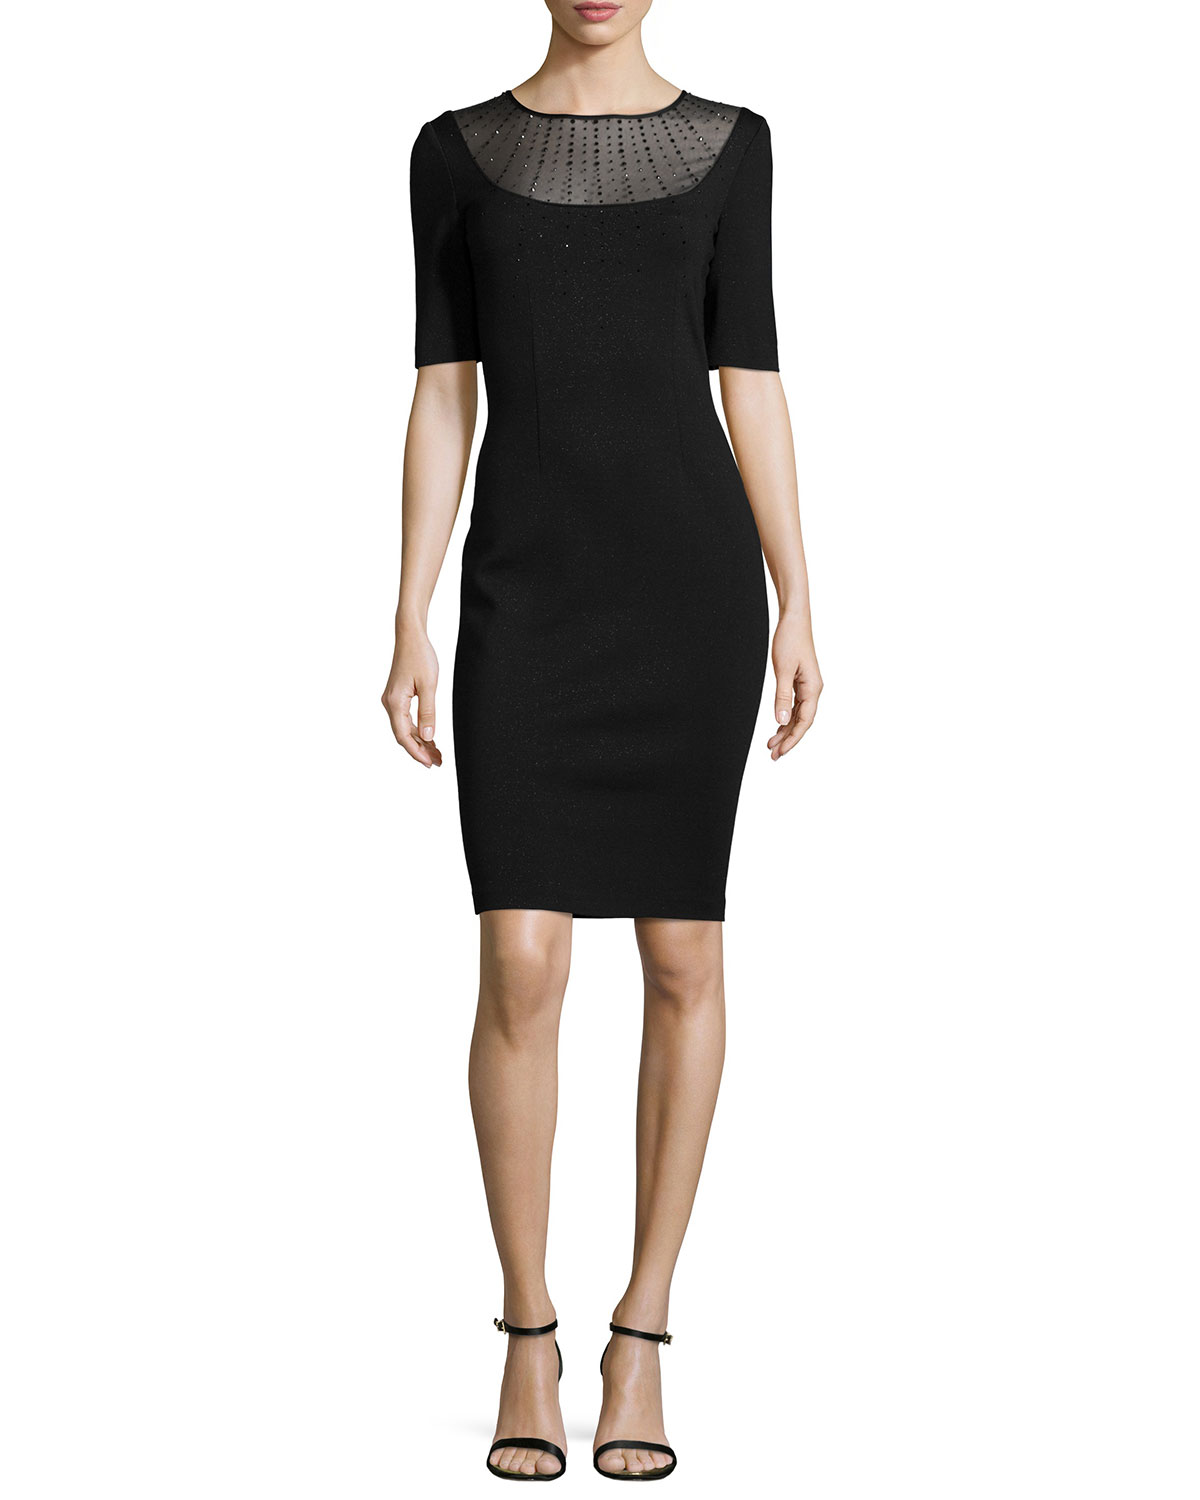 Shimmery Milano Knit Jewel-Neck Sheath Dress, Caviar